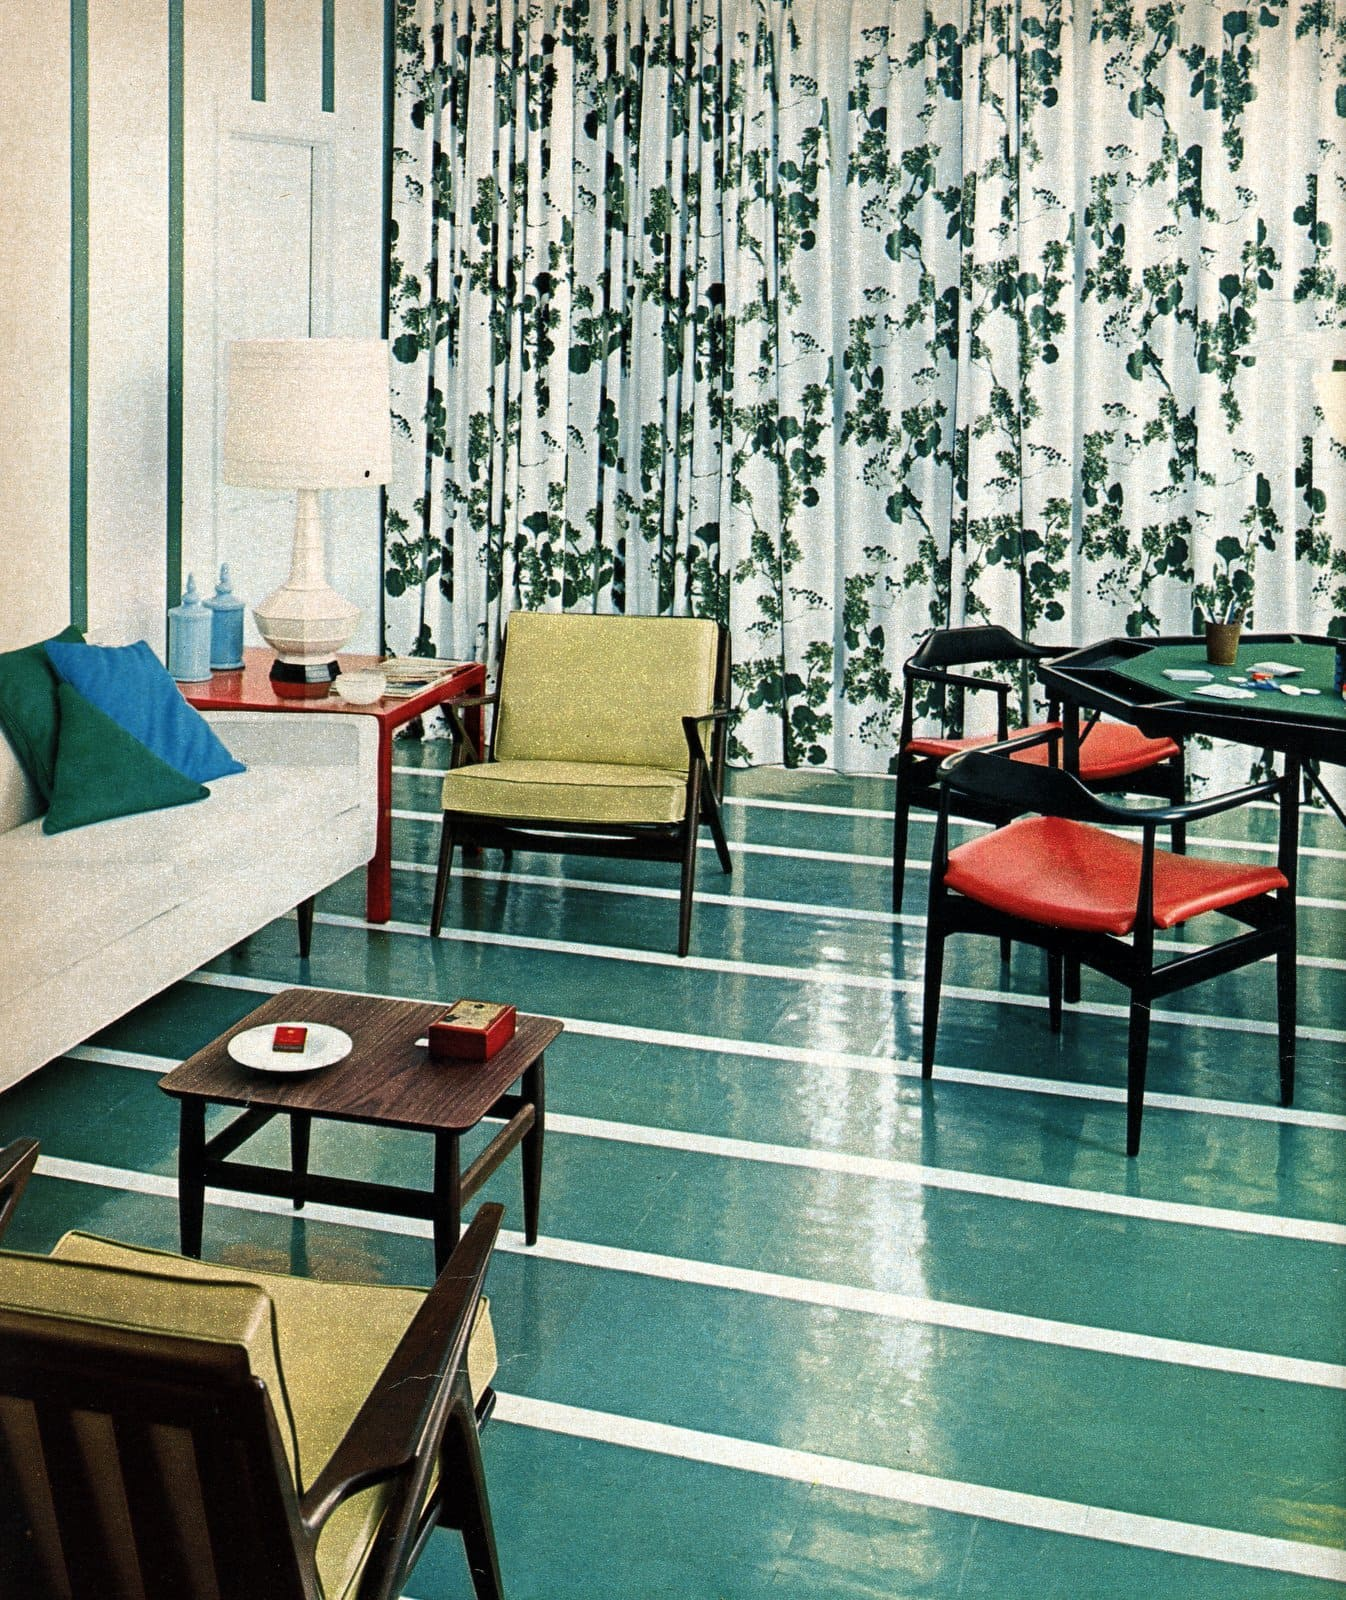 Teal striped living room flooring - Colorful vintage 1950s home decor